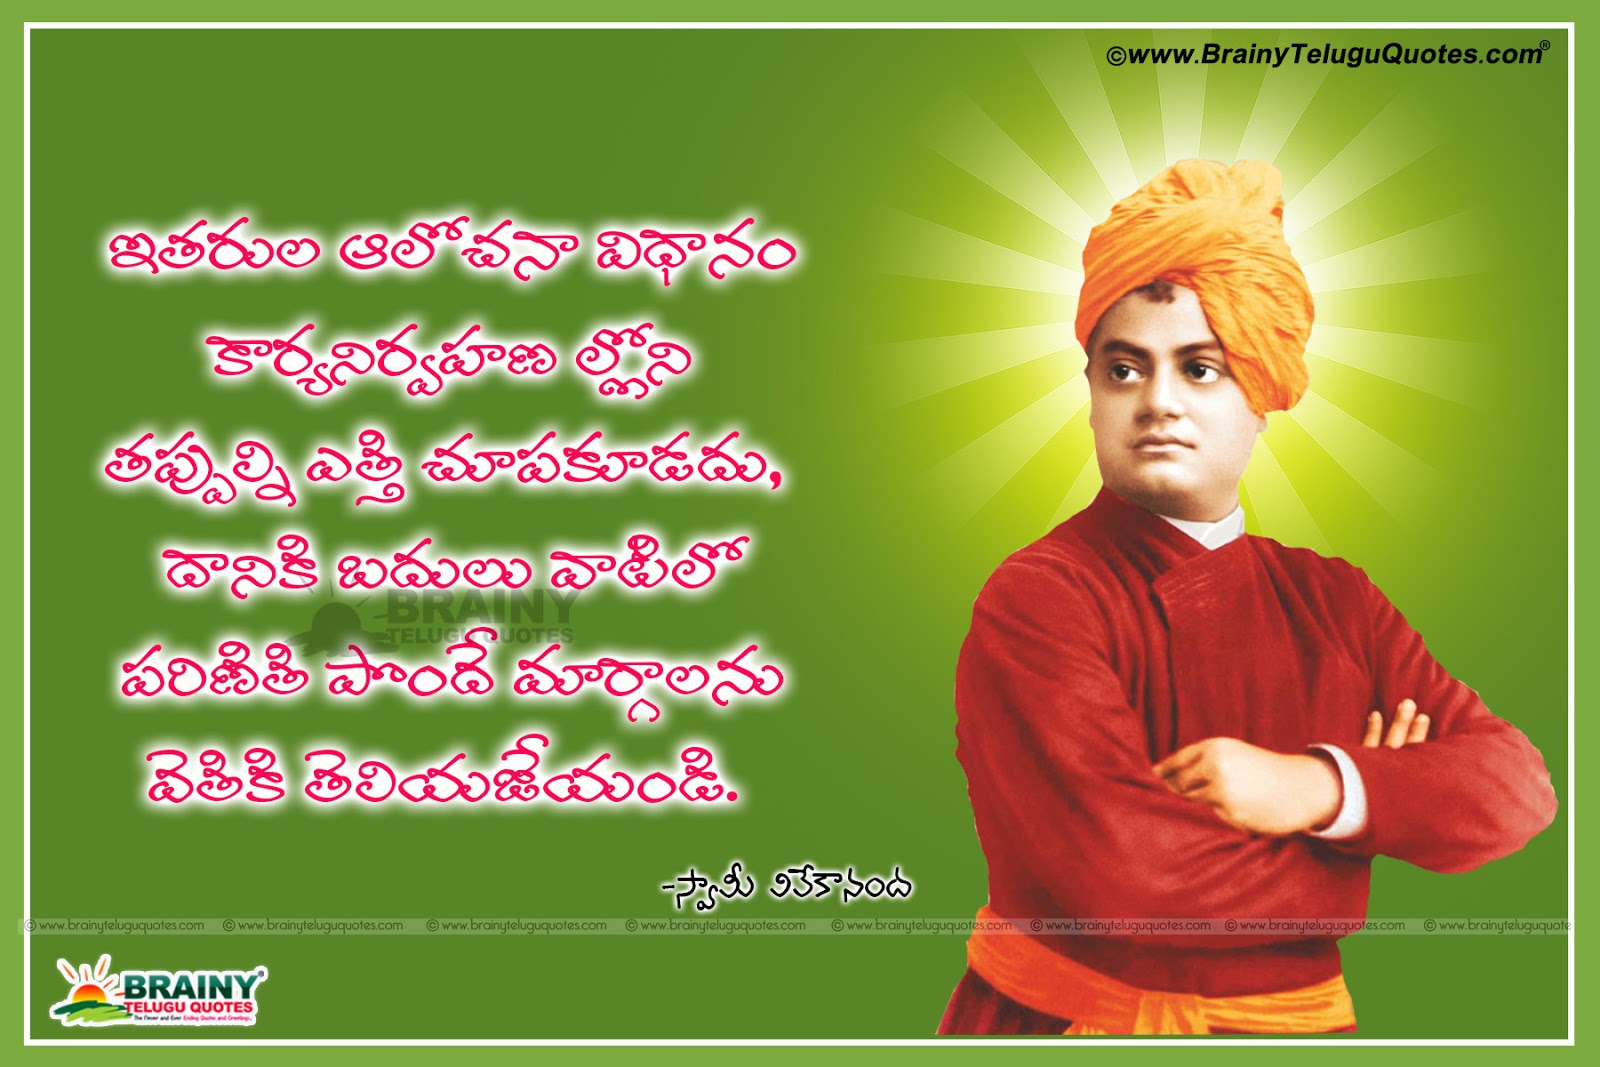 Swami Vivekananda Great Success inspirational Quotes and ...